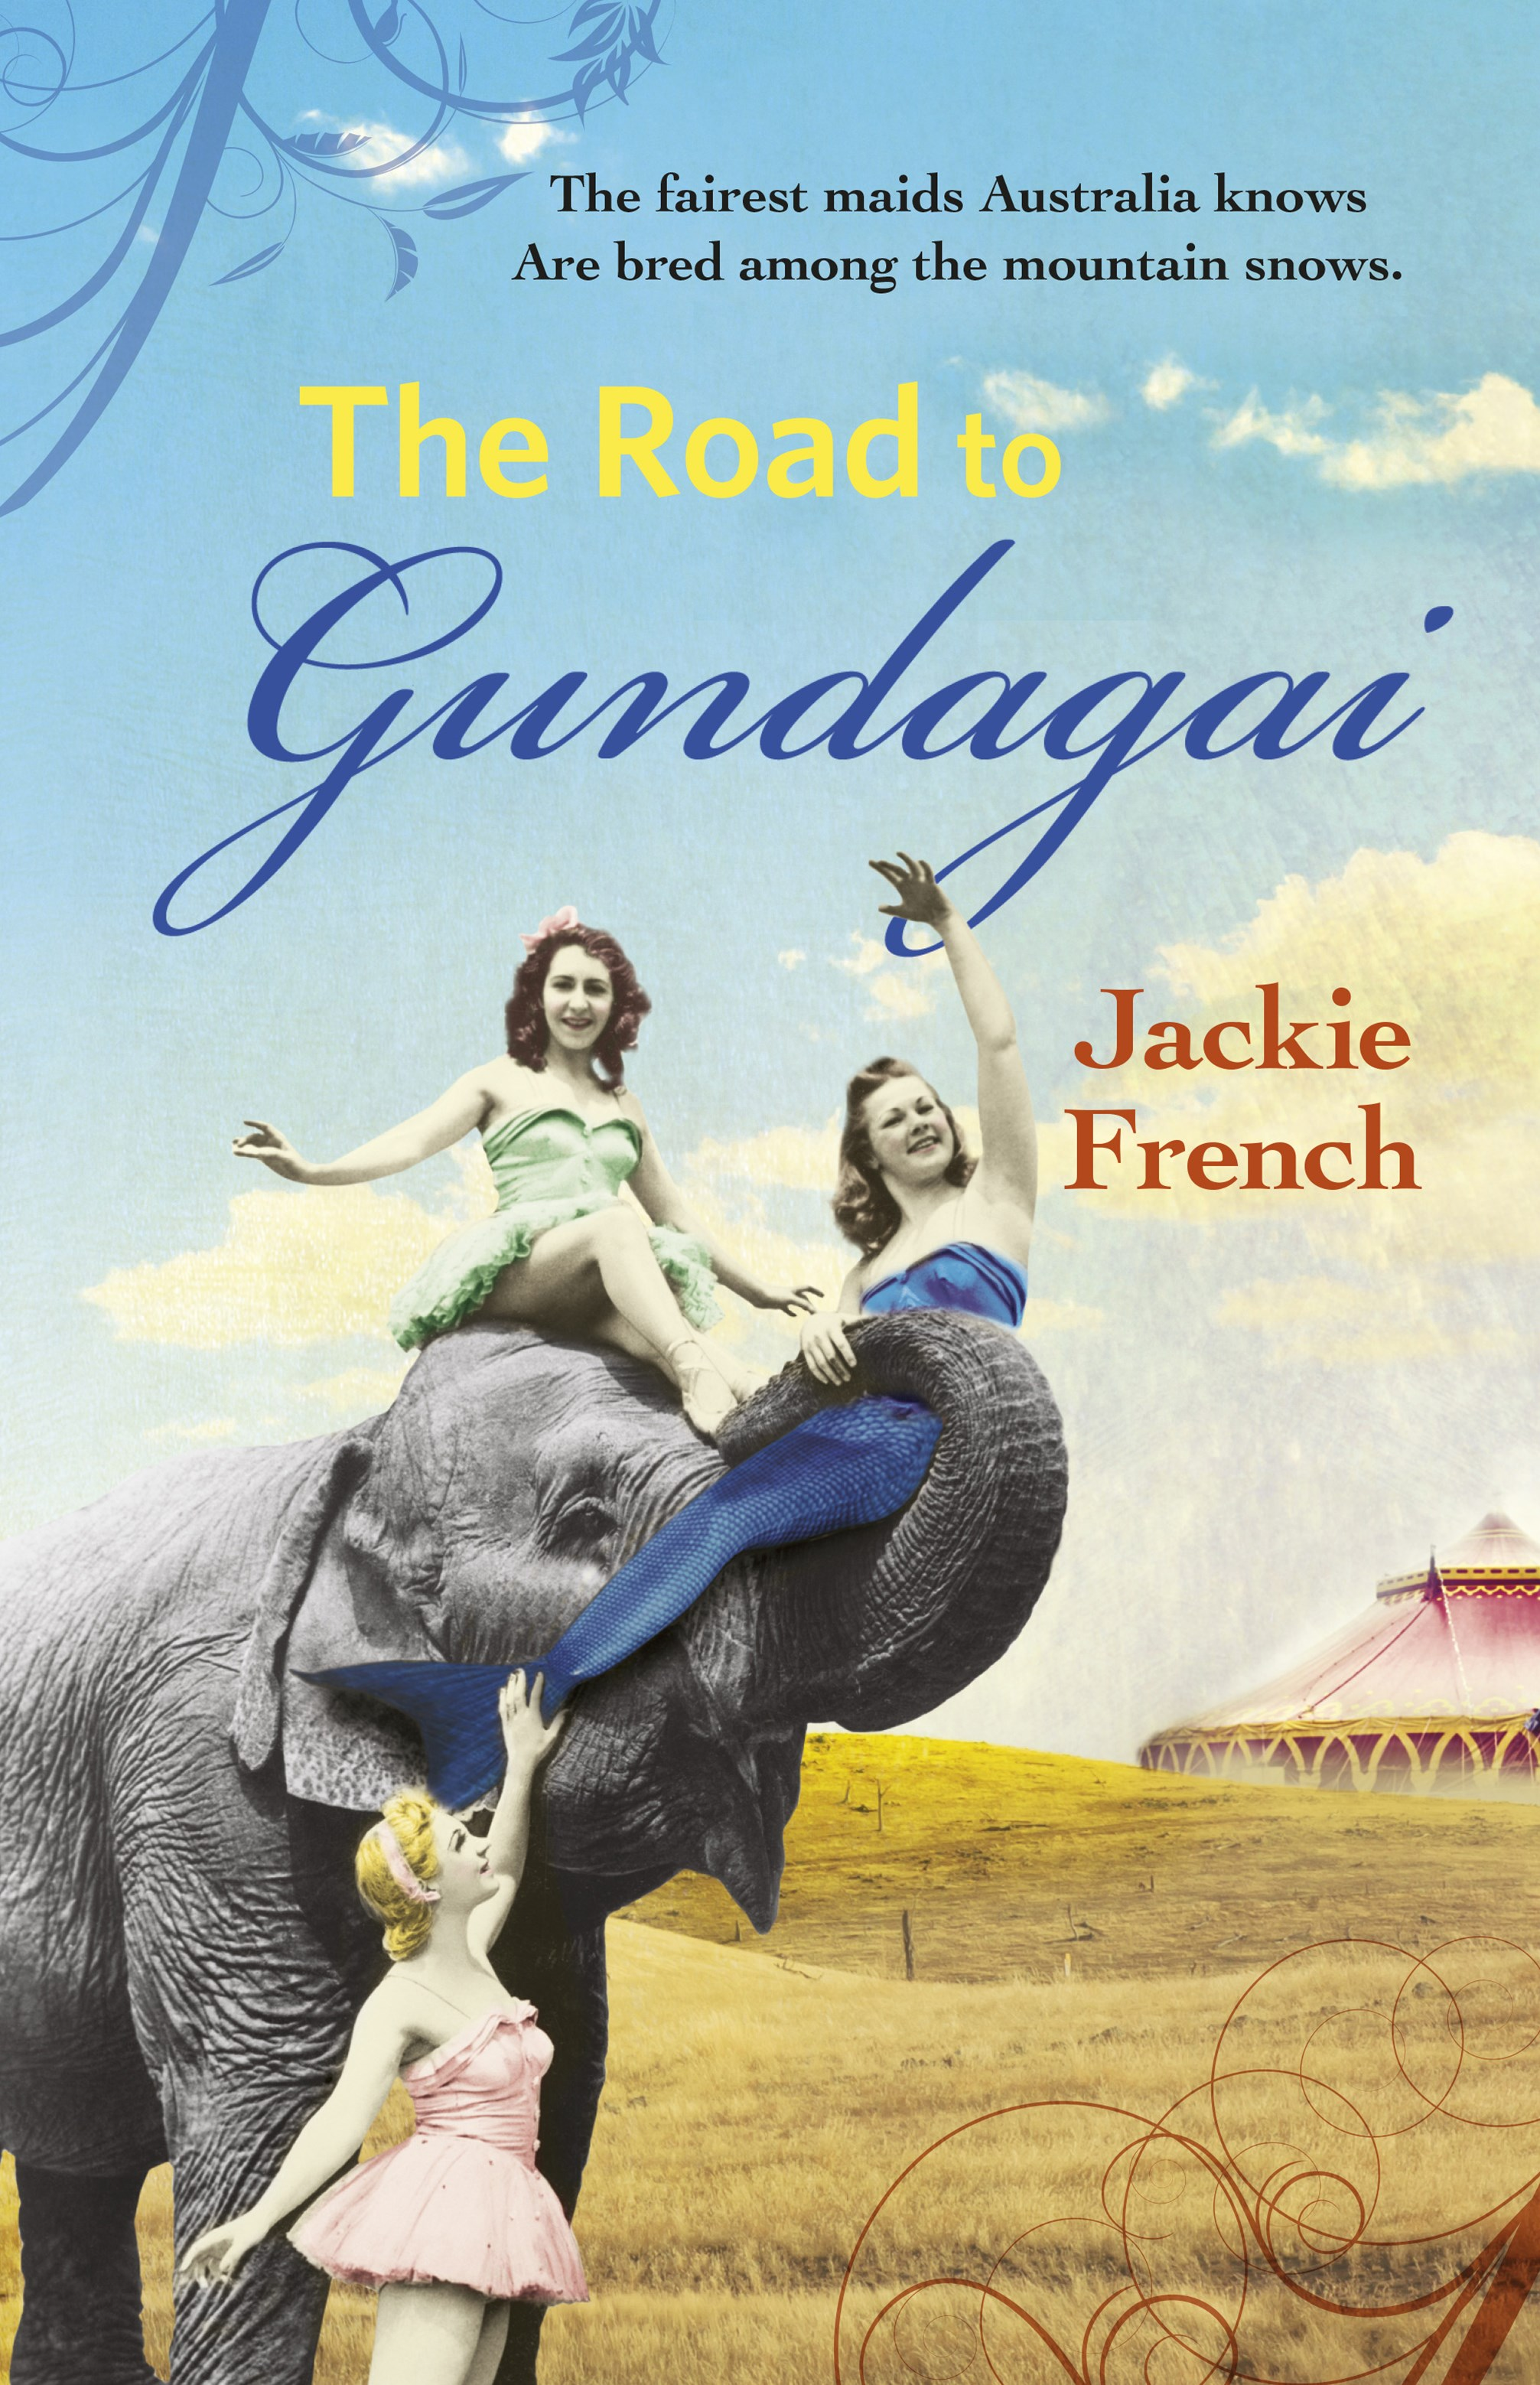 The Road to Gundagai